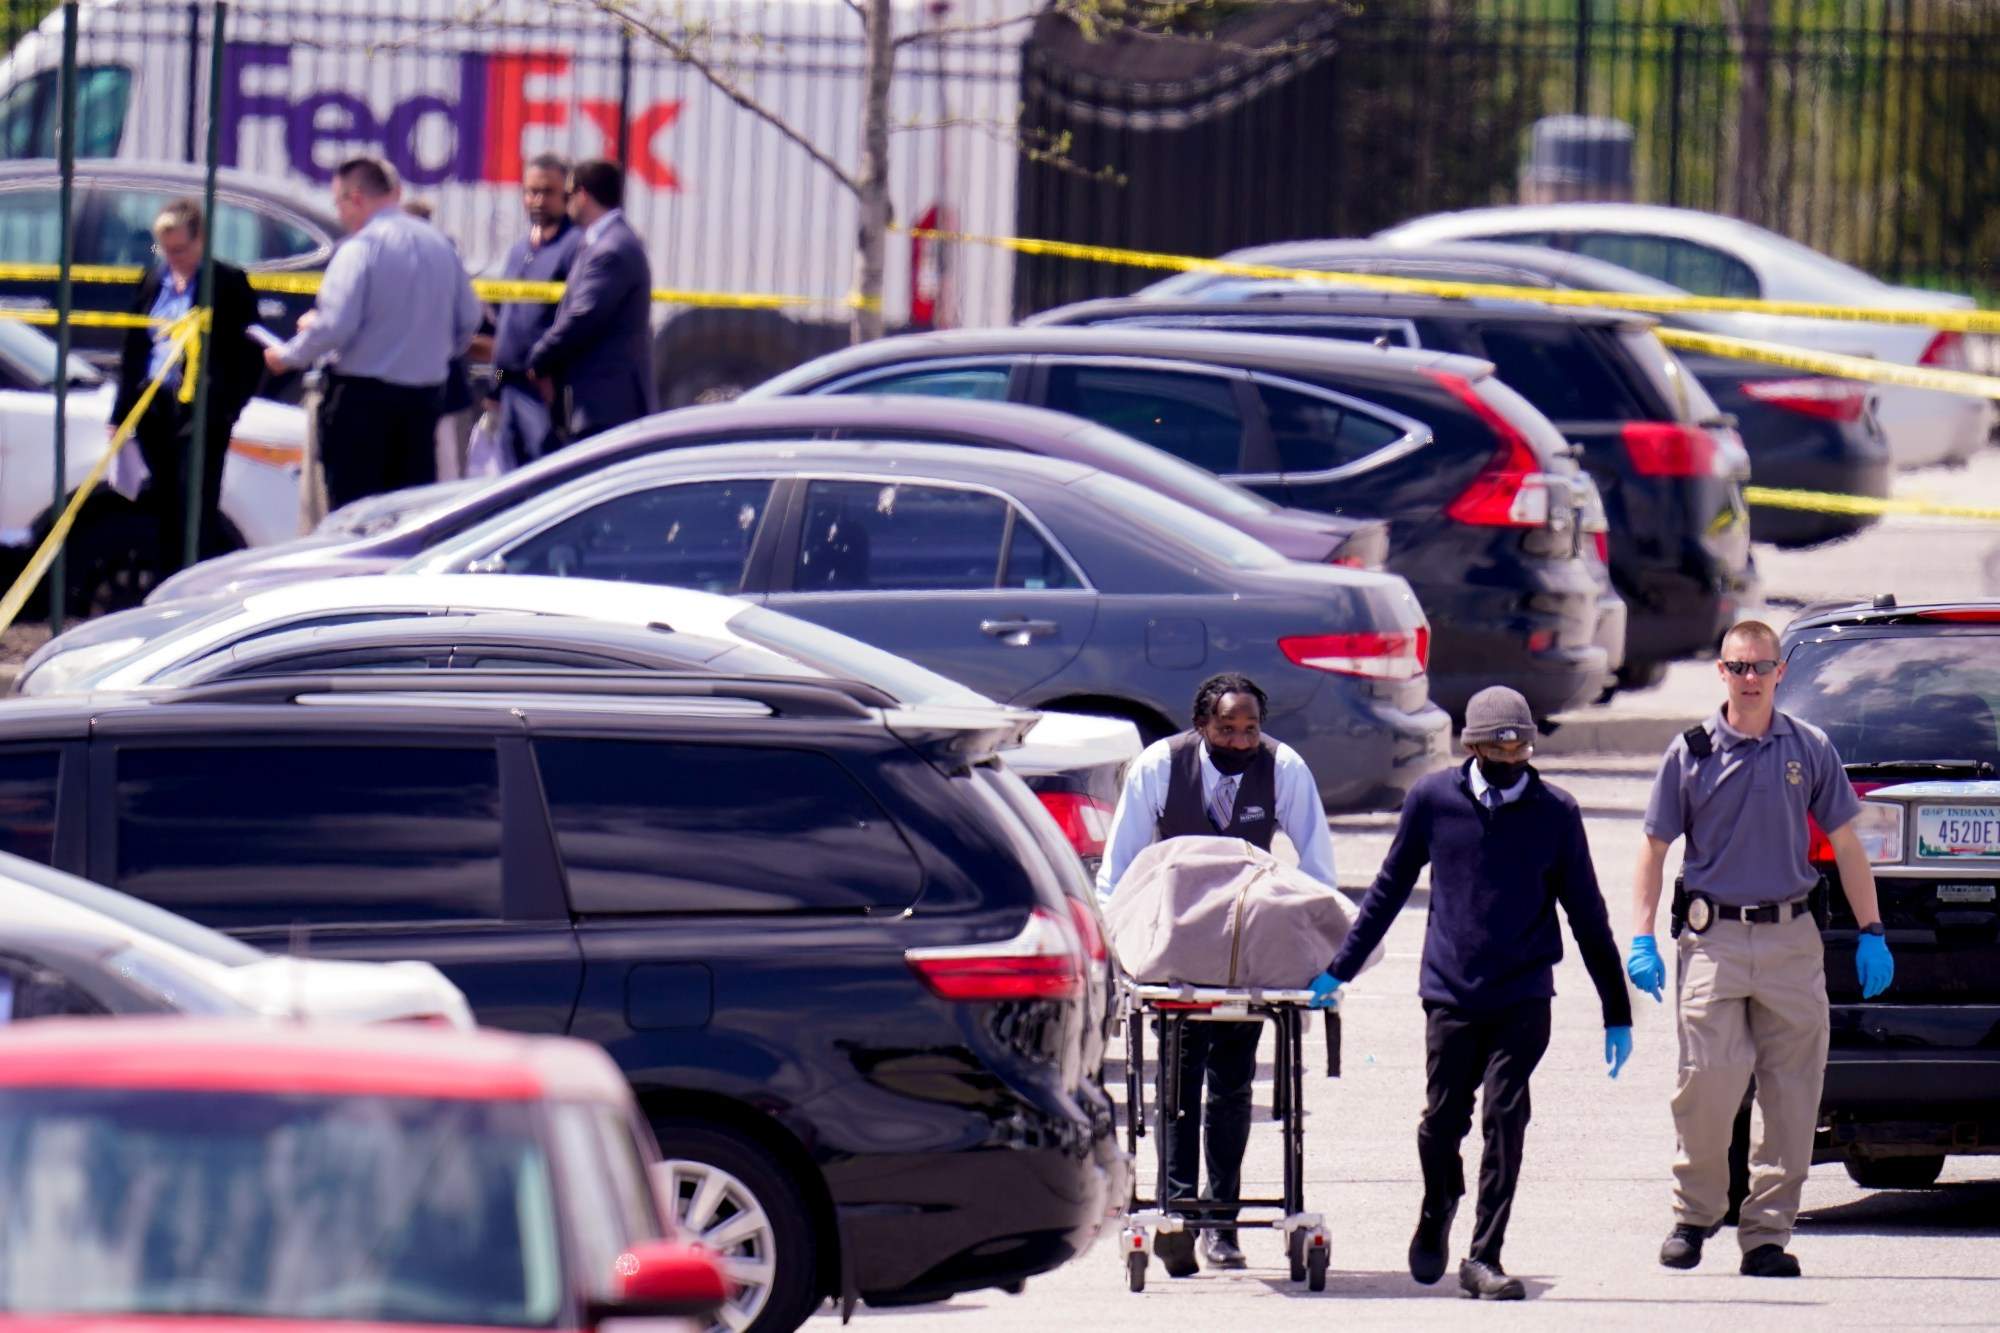 A body is taken from the scene where multiple people were shot at a FedEx Ground facility in Indianapolis, Friday, April 16, 2021. (AP Photo/Michael Conroy)